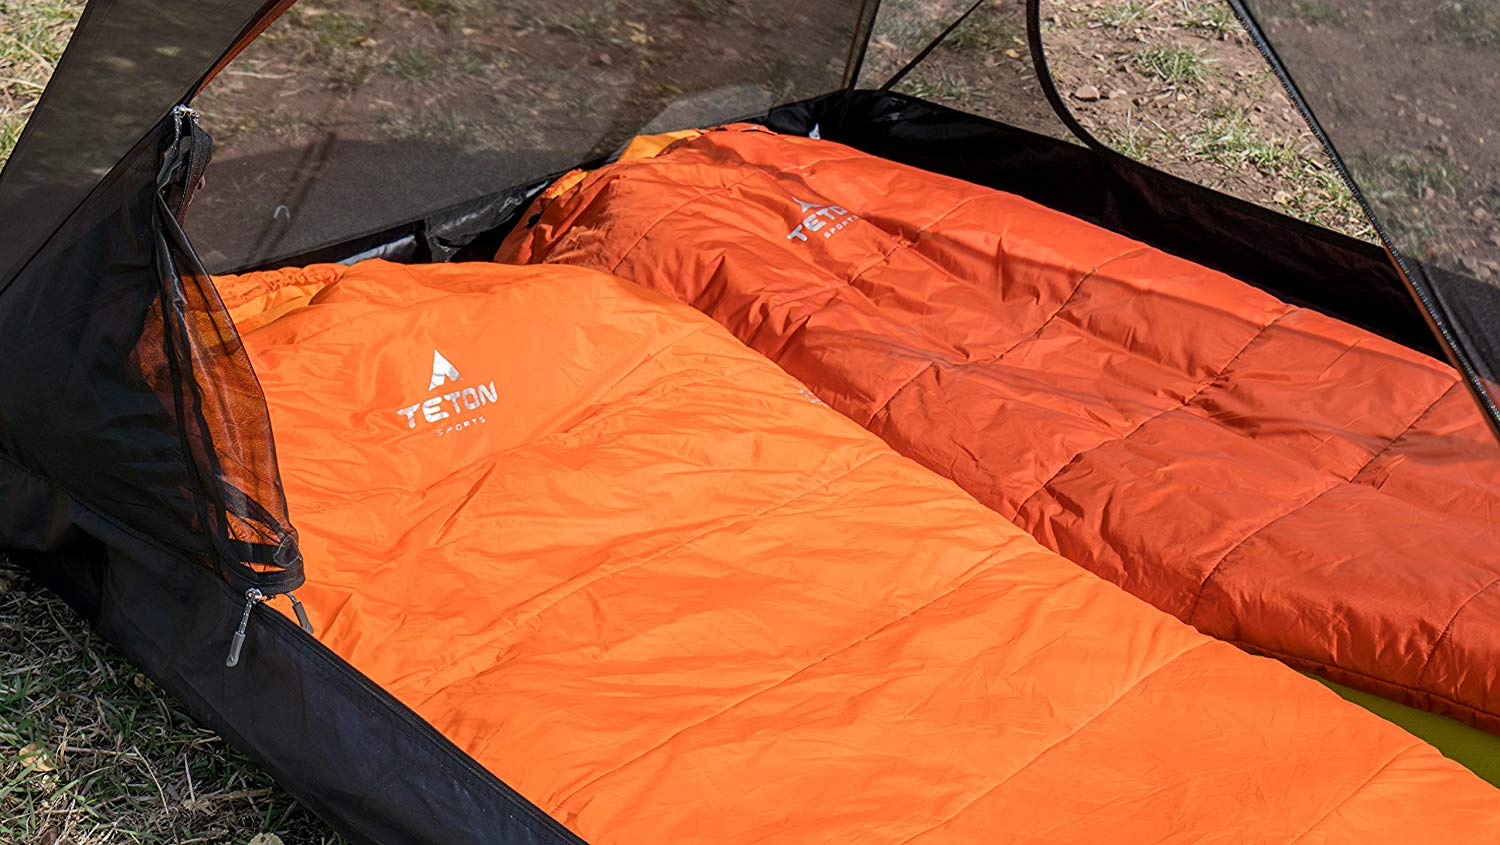 Photo of 2 sleeping bags inside a tent. TOP 7 Best Sleeping Bags Under 200 – Make your camping comfortable, yet affordable!